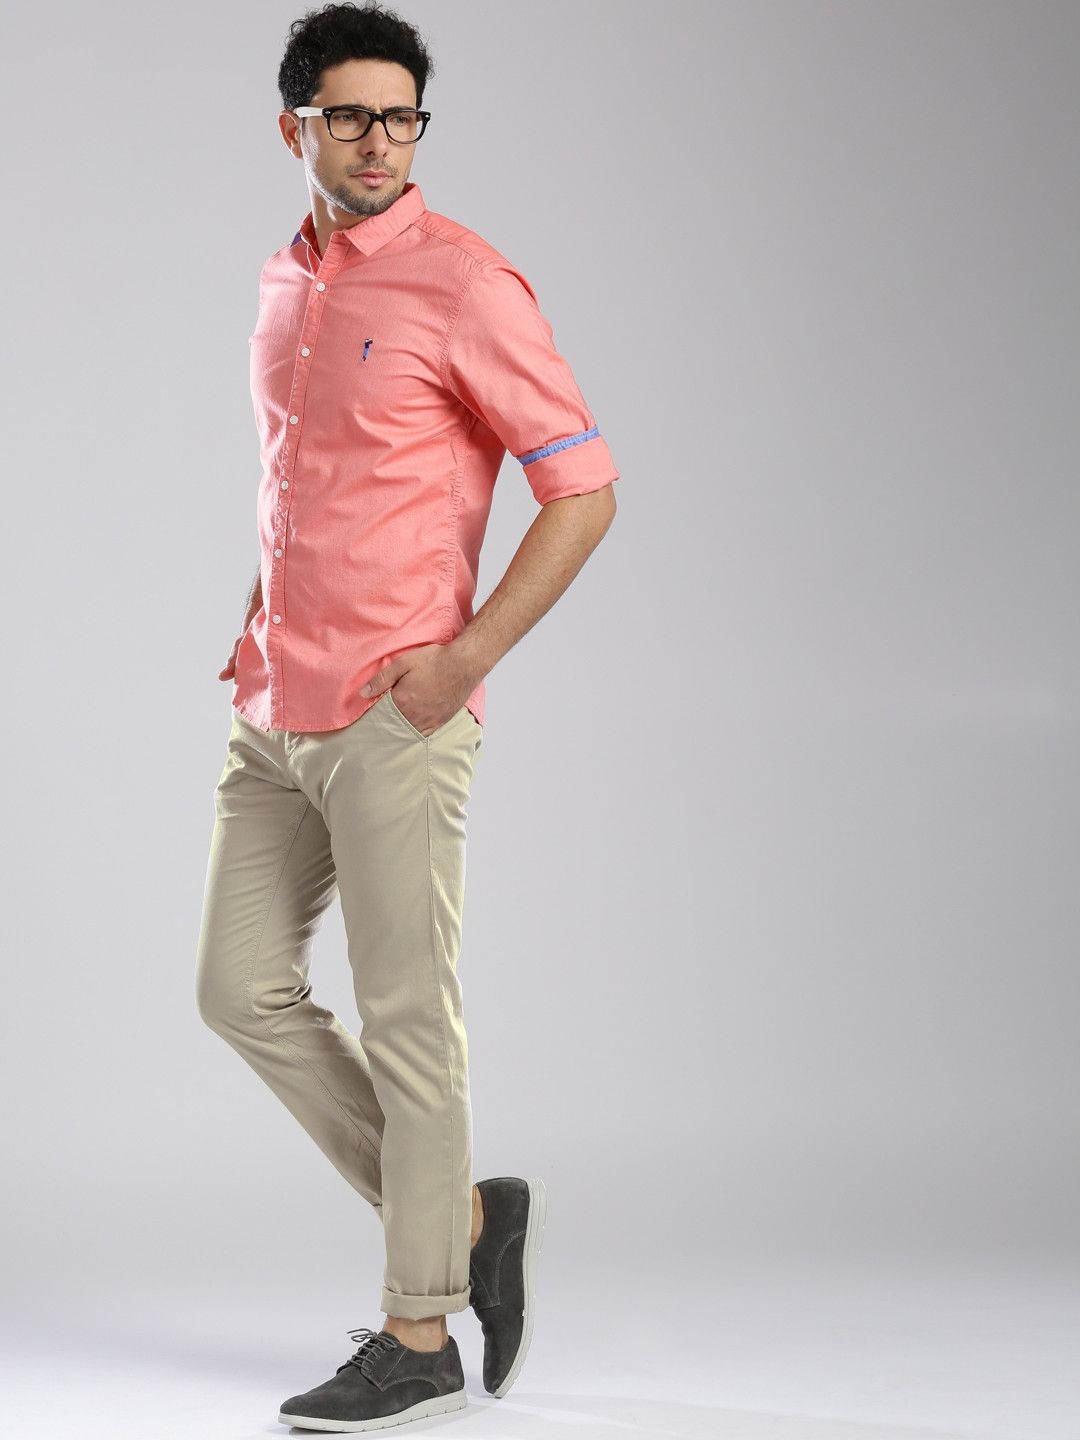 934999a1b694 Bossini Beige Slim Tapered Fit Chino Trousers Little Diffrent Combination !  #solid #chinos #casual